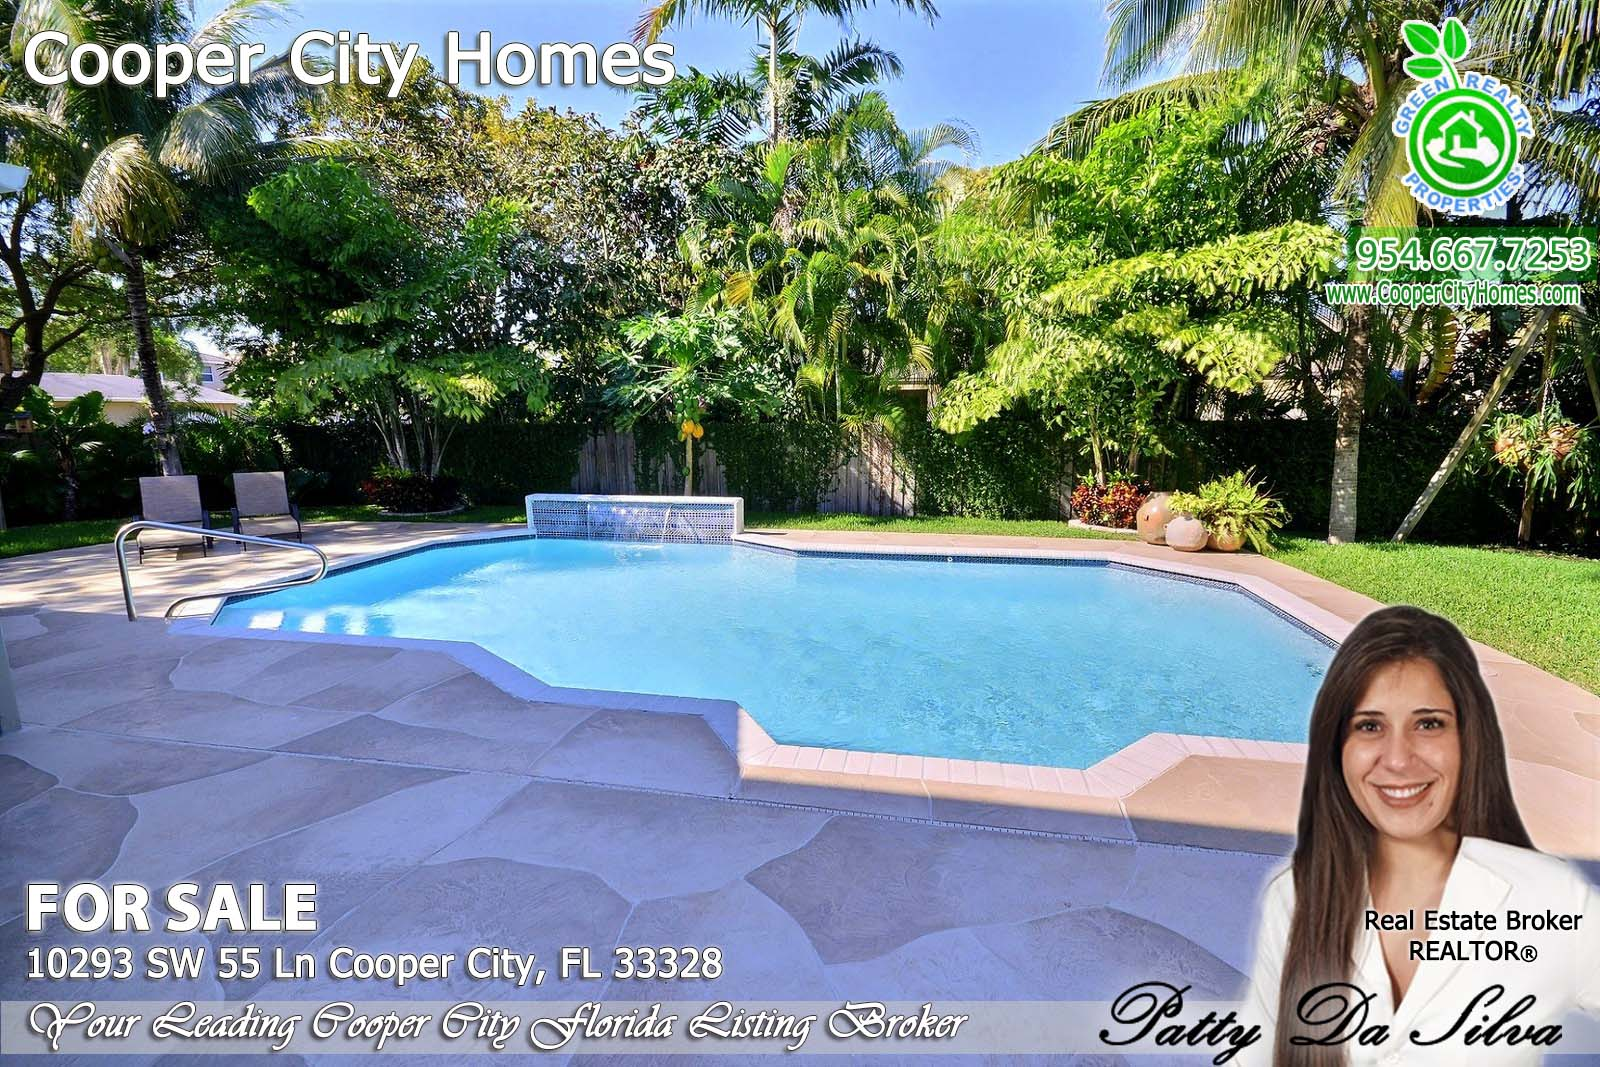 Cooper City Real Estate Broker Patty Da Silva Green Realty Properties (5)